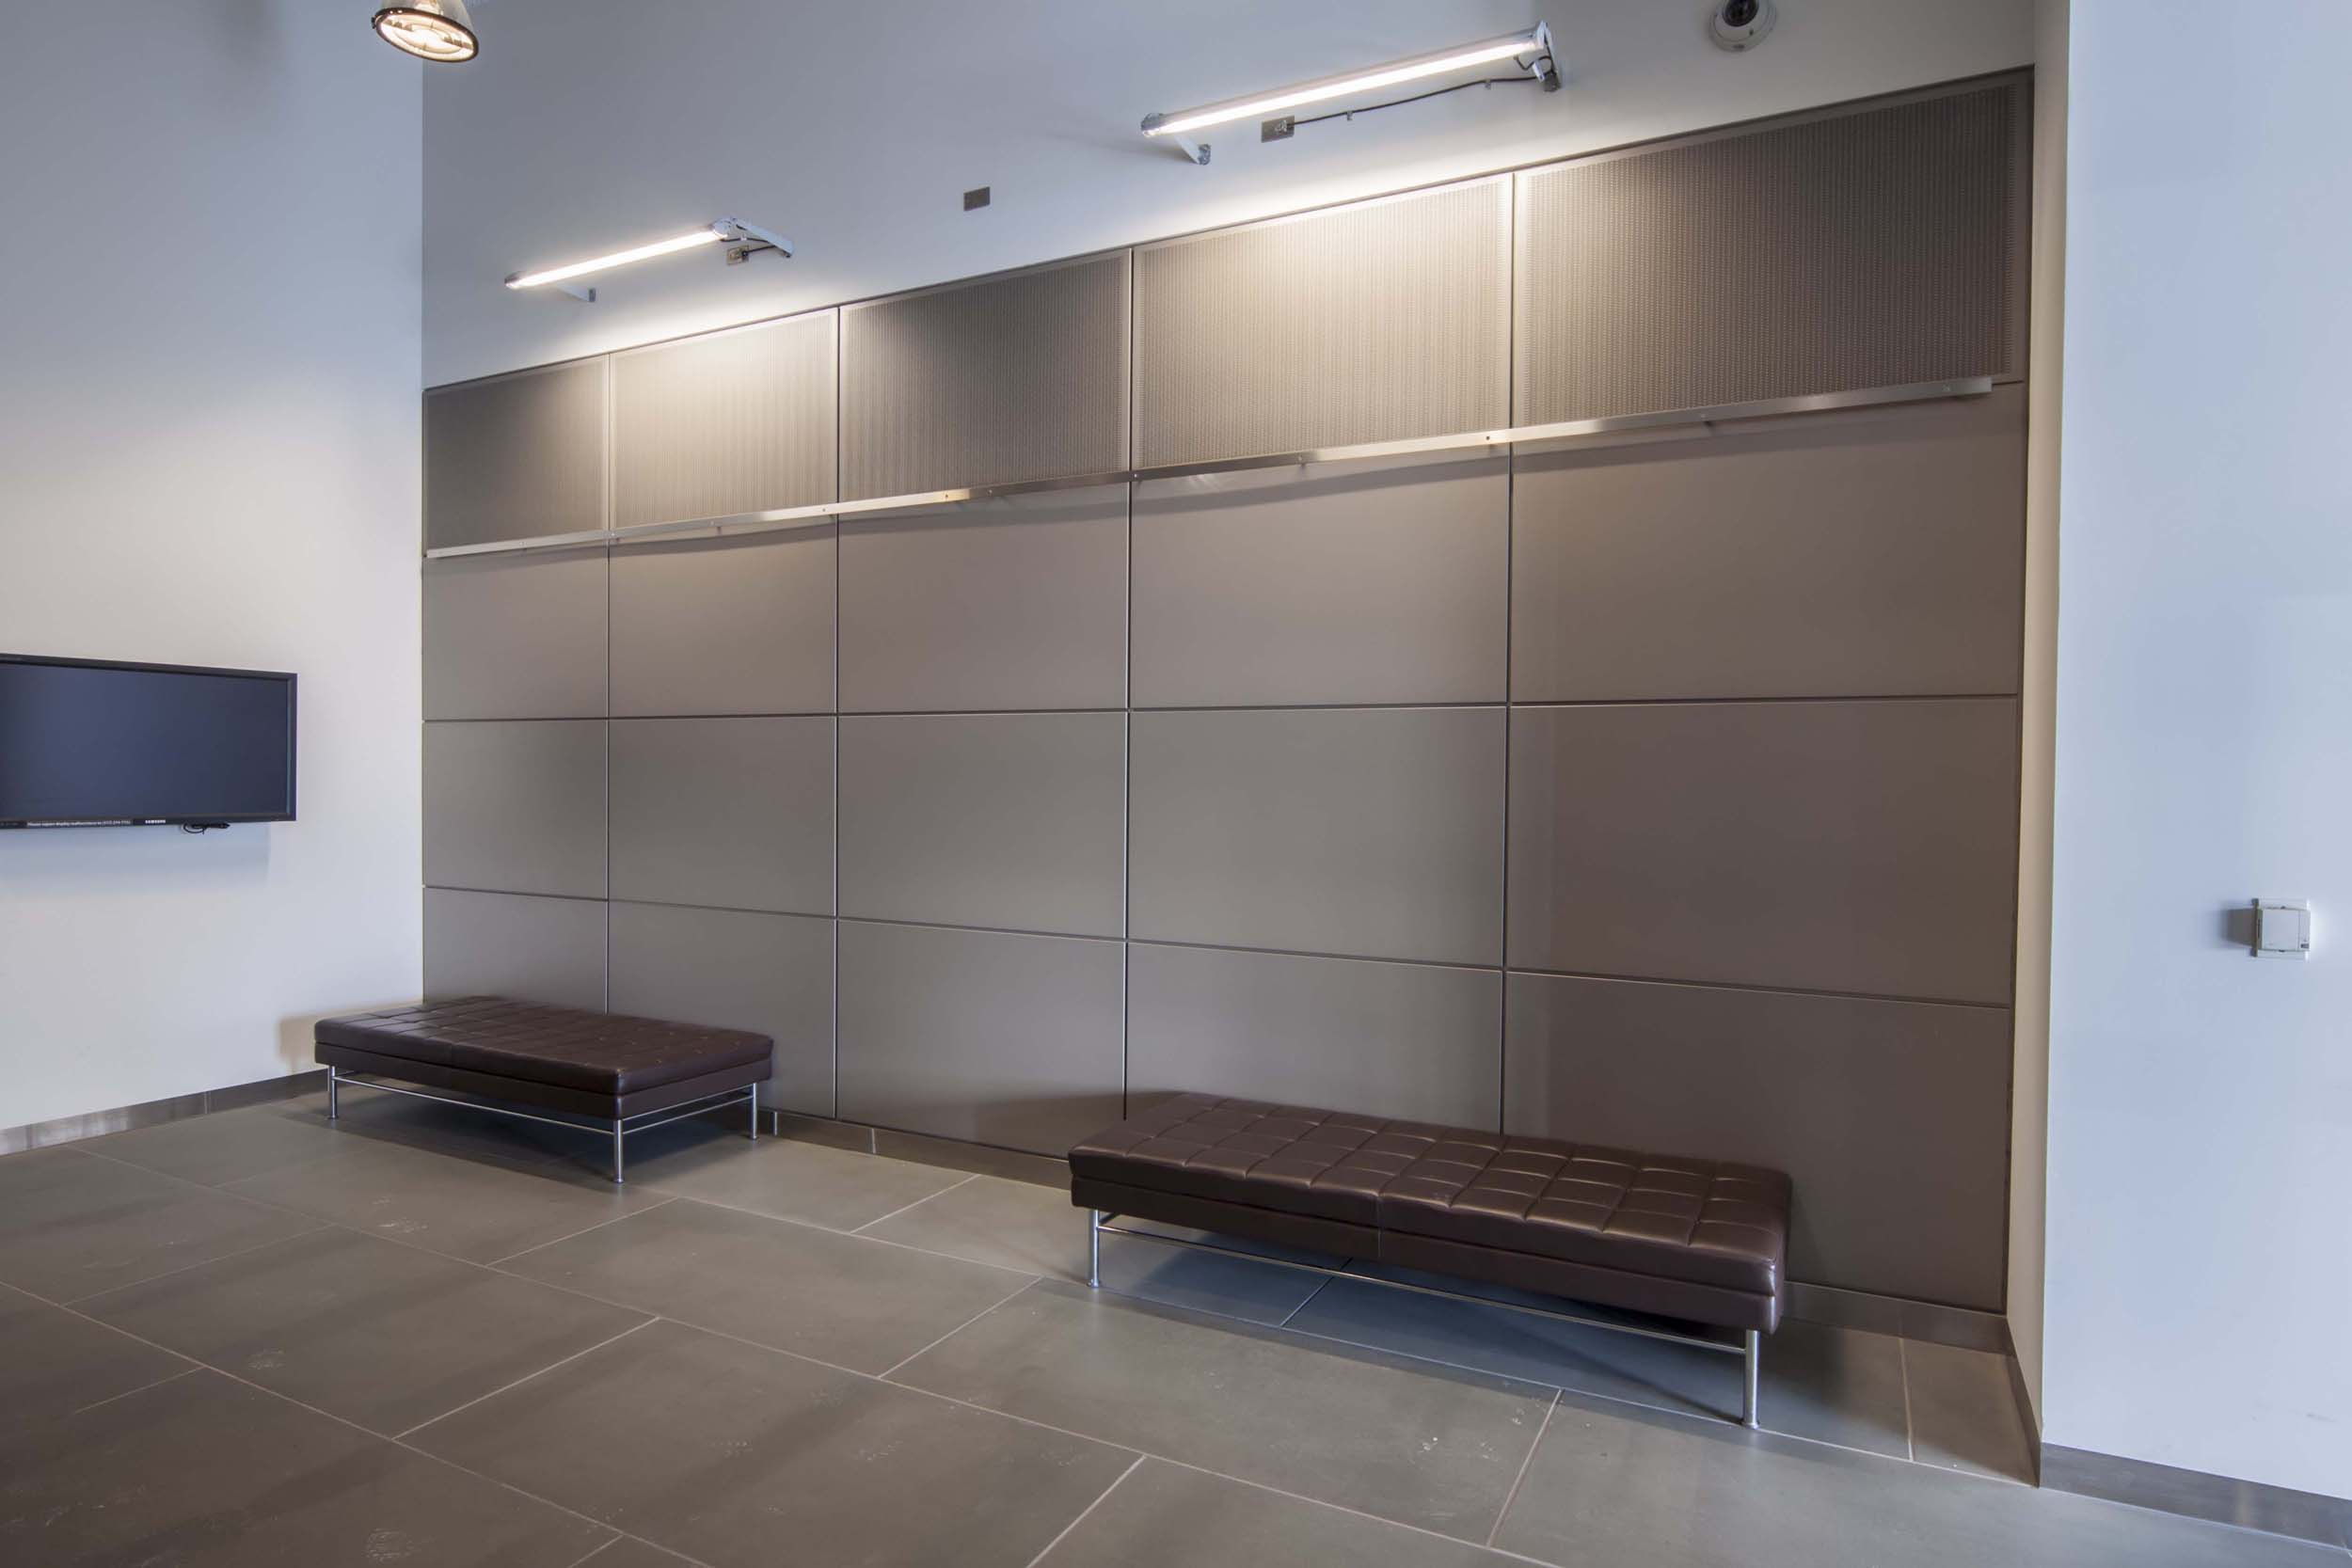 Metallic Wall Paneling : Gordon formas inc